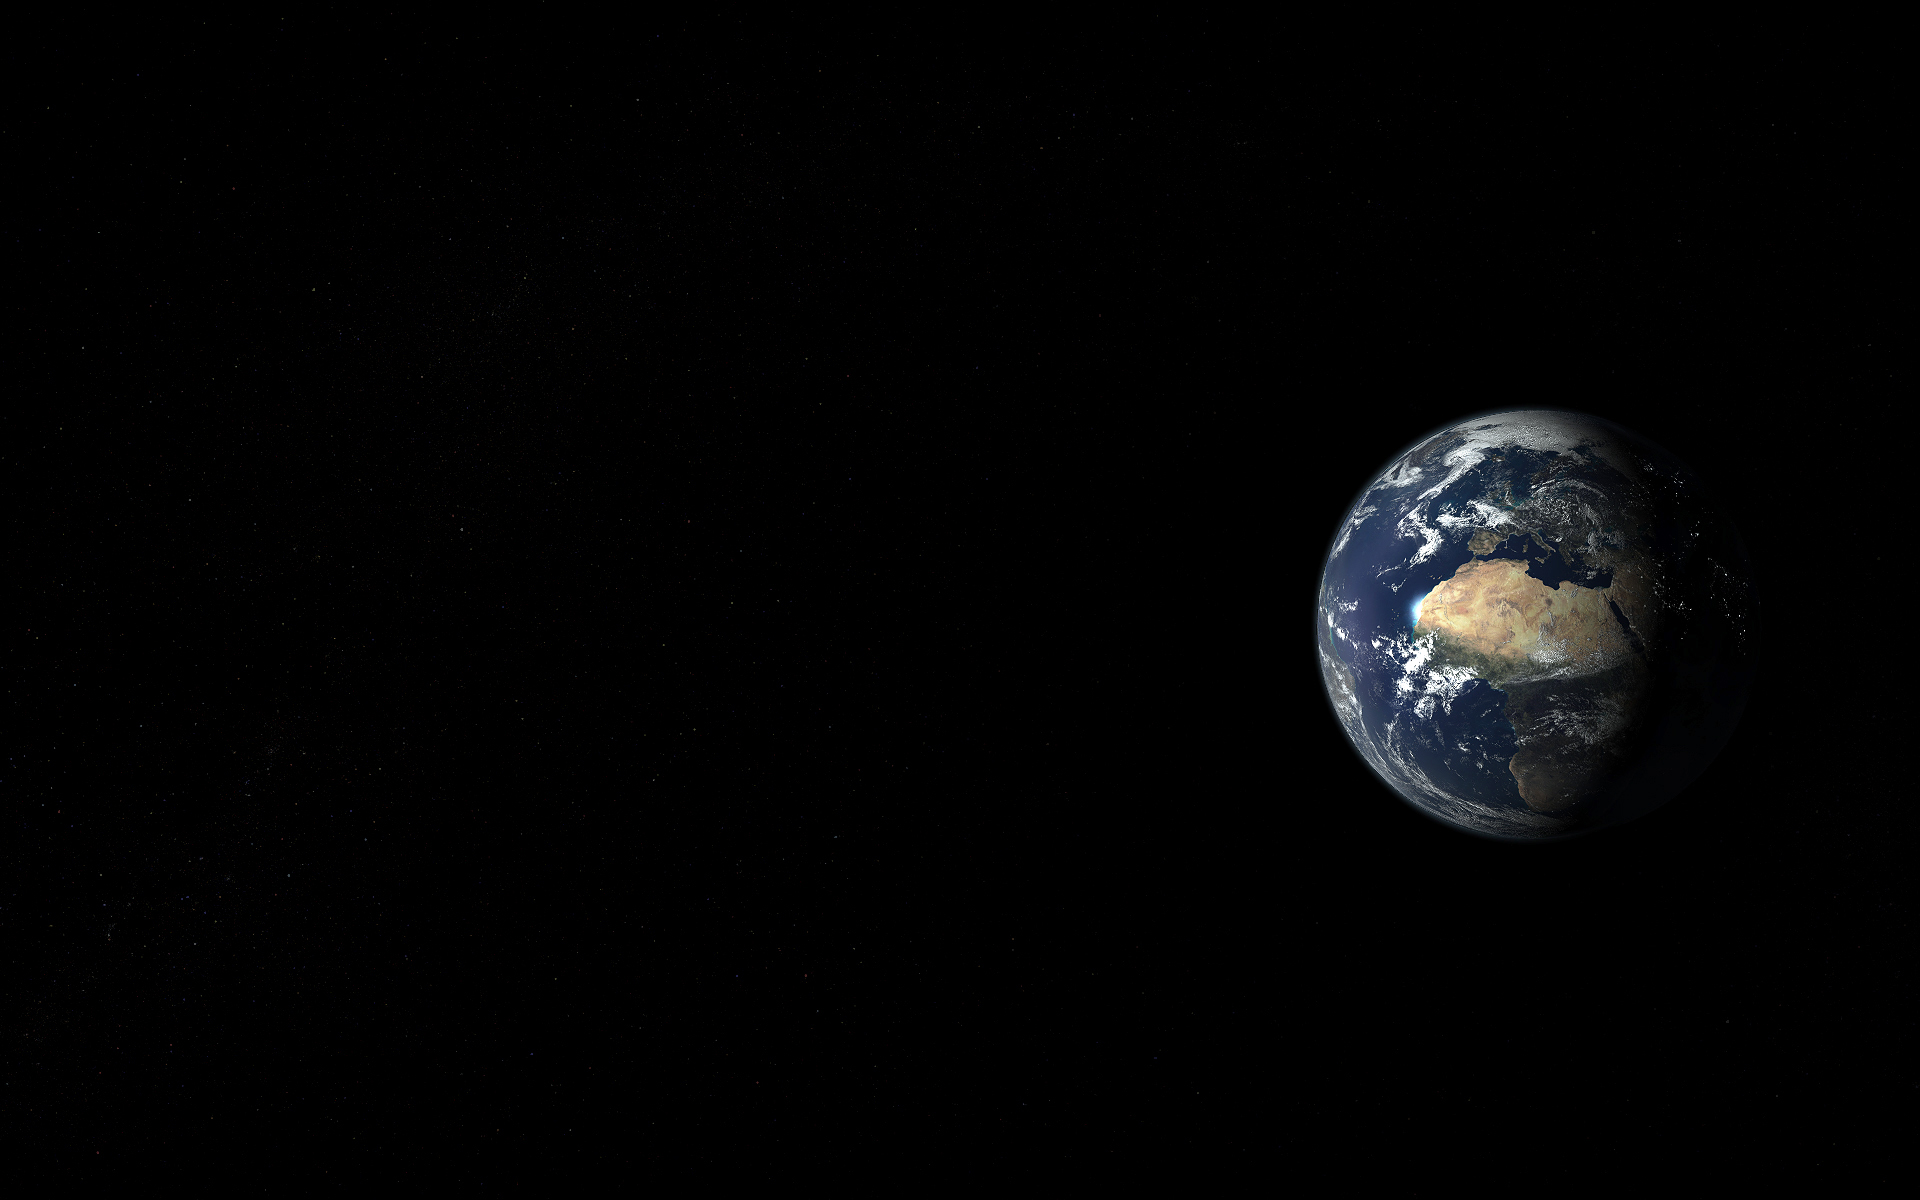 Earth From Space 19 Wide Wallpaper - Hivewallpaper.com